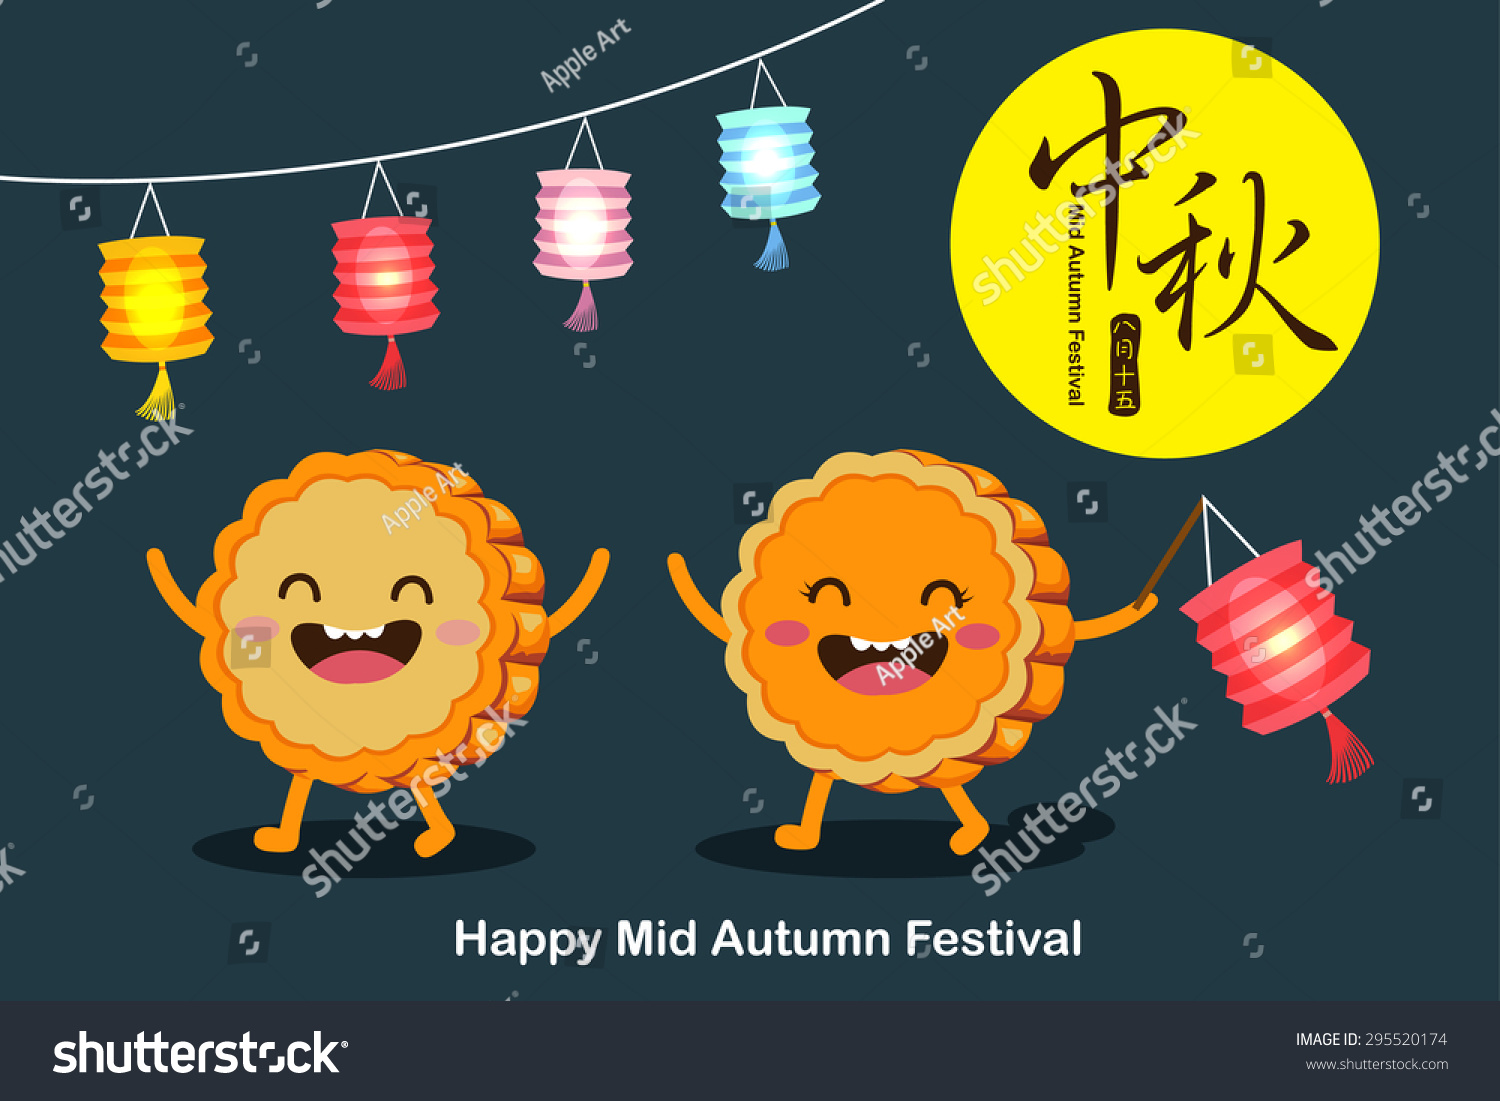 Angry Birds Playing Card Deck And Vector Characters: Vector Mooncakes Cartoon Character Mid Autumn Stock Vector